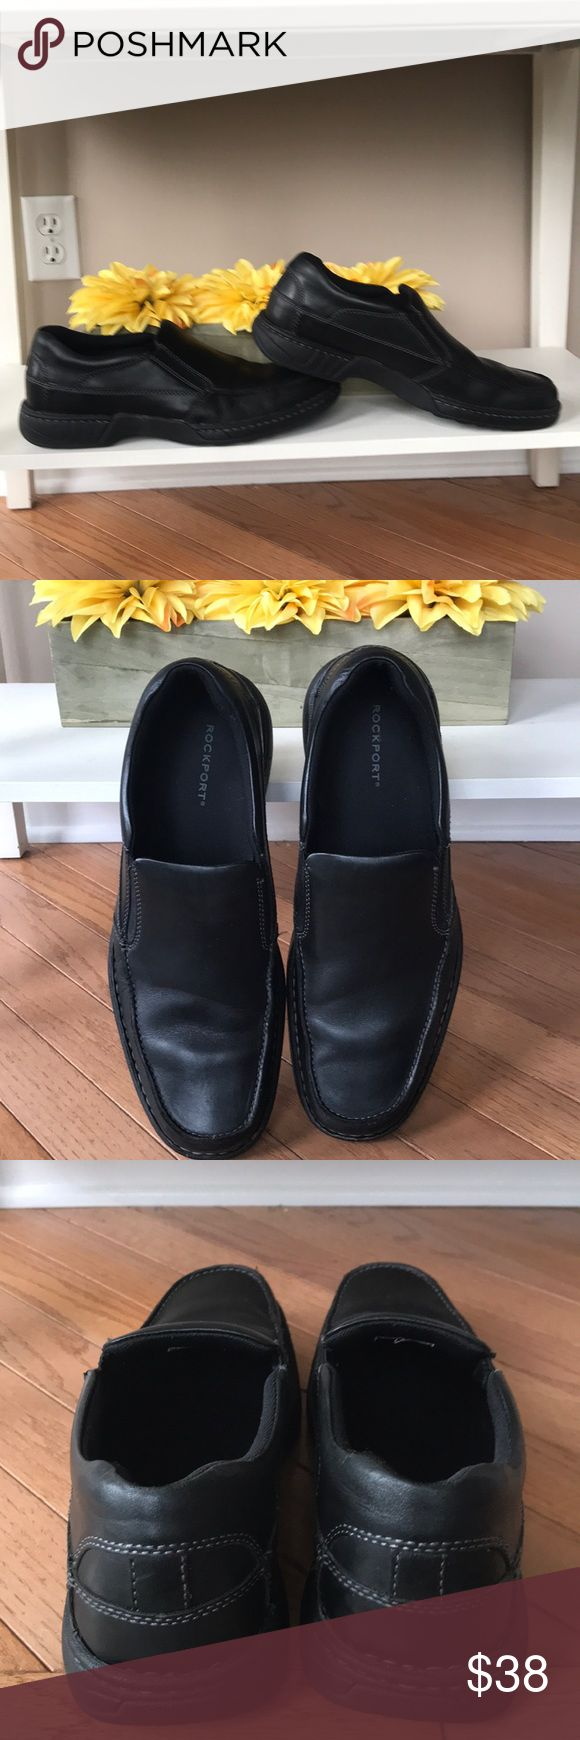 Men's rockport black leather shoe Like new black leather slip on Rockport shoe. Men's size 12. Excellent condition. All leather Rockport Shoes Loafers & Slip-Ons